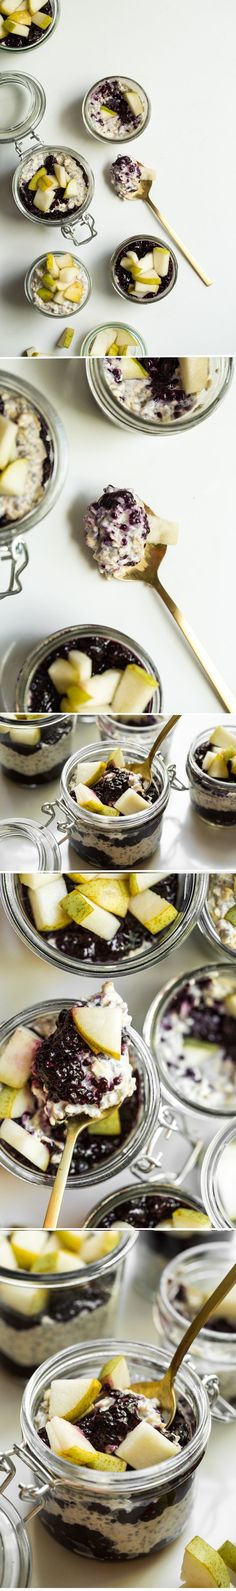 Coconut-Cardamom Vegan Overnight Oat Parfait with Blueberry Chia Seed Jam — Oh She Glows